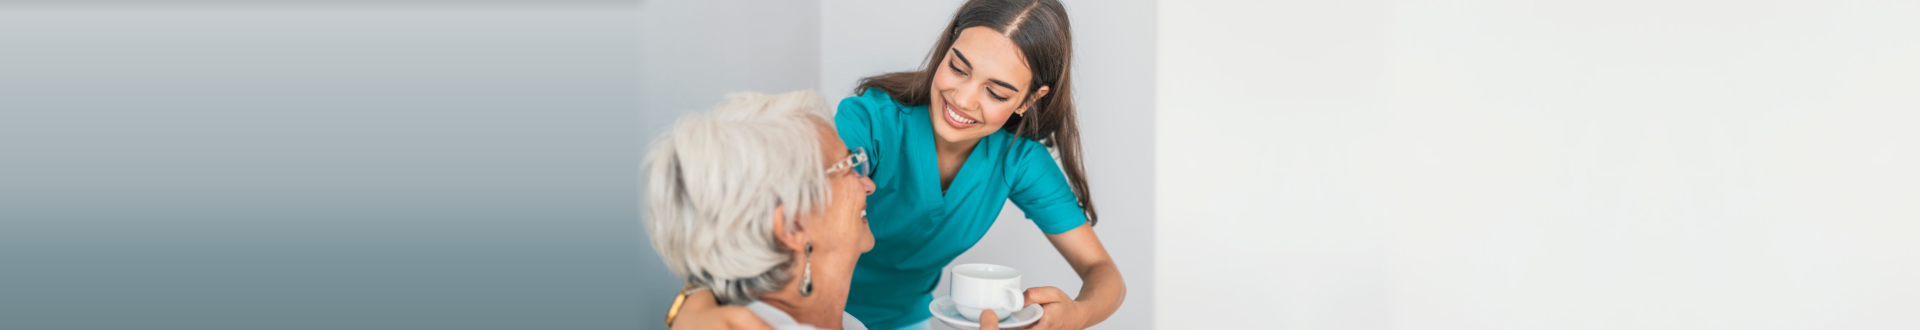 caregiver smiling while giving a cup of water